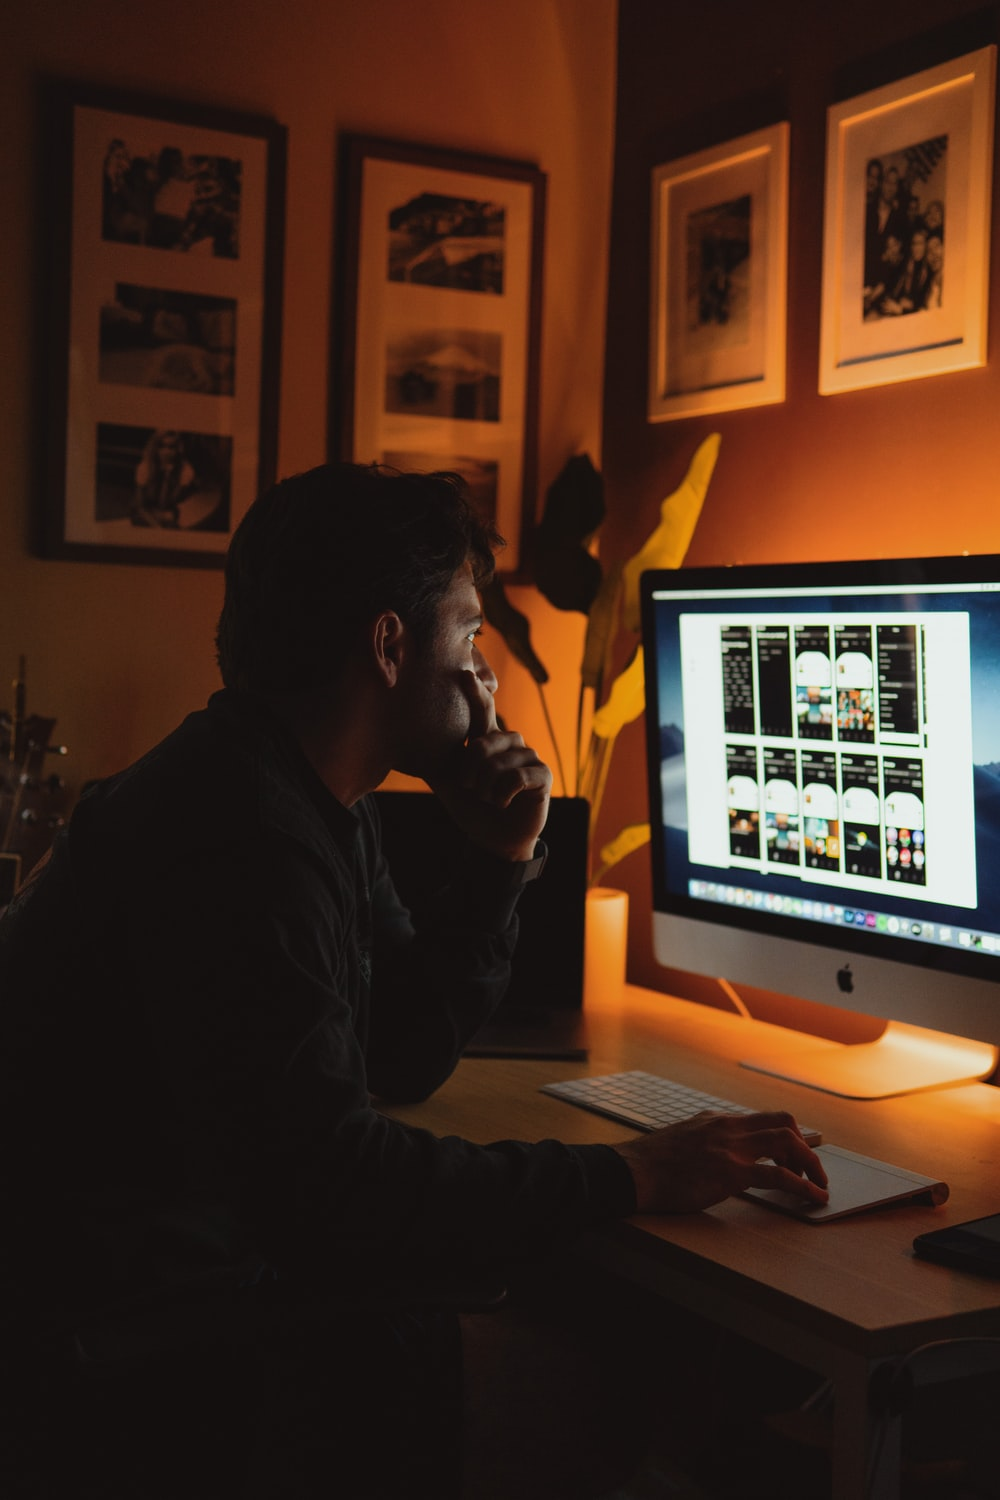 man in black jacket sitting in front of silver imac